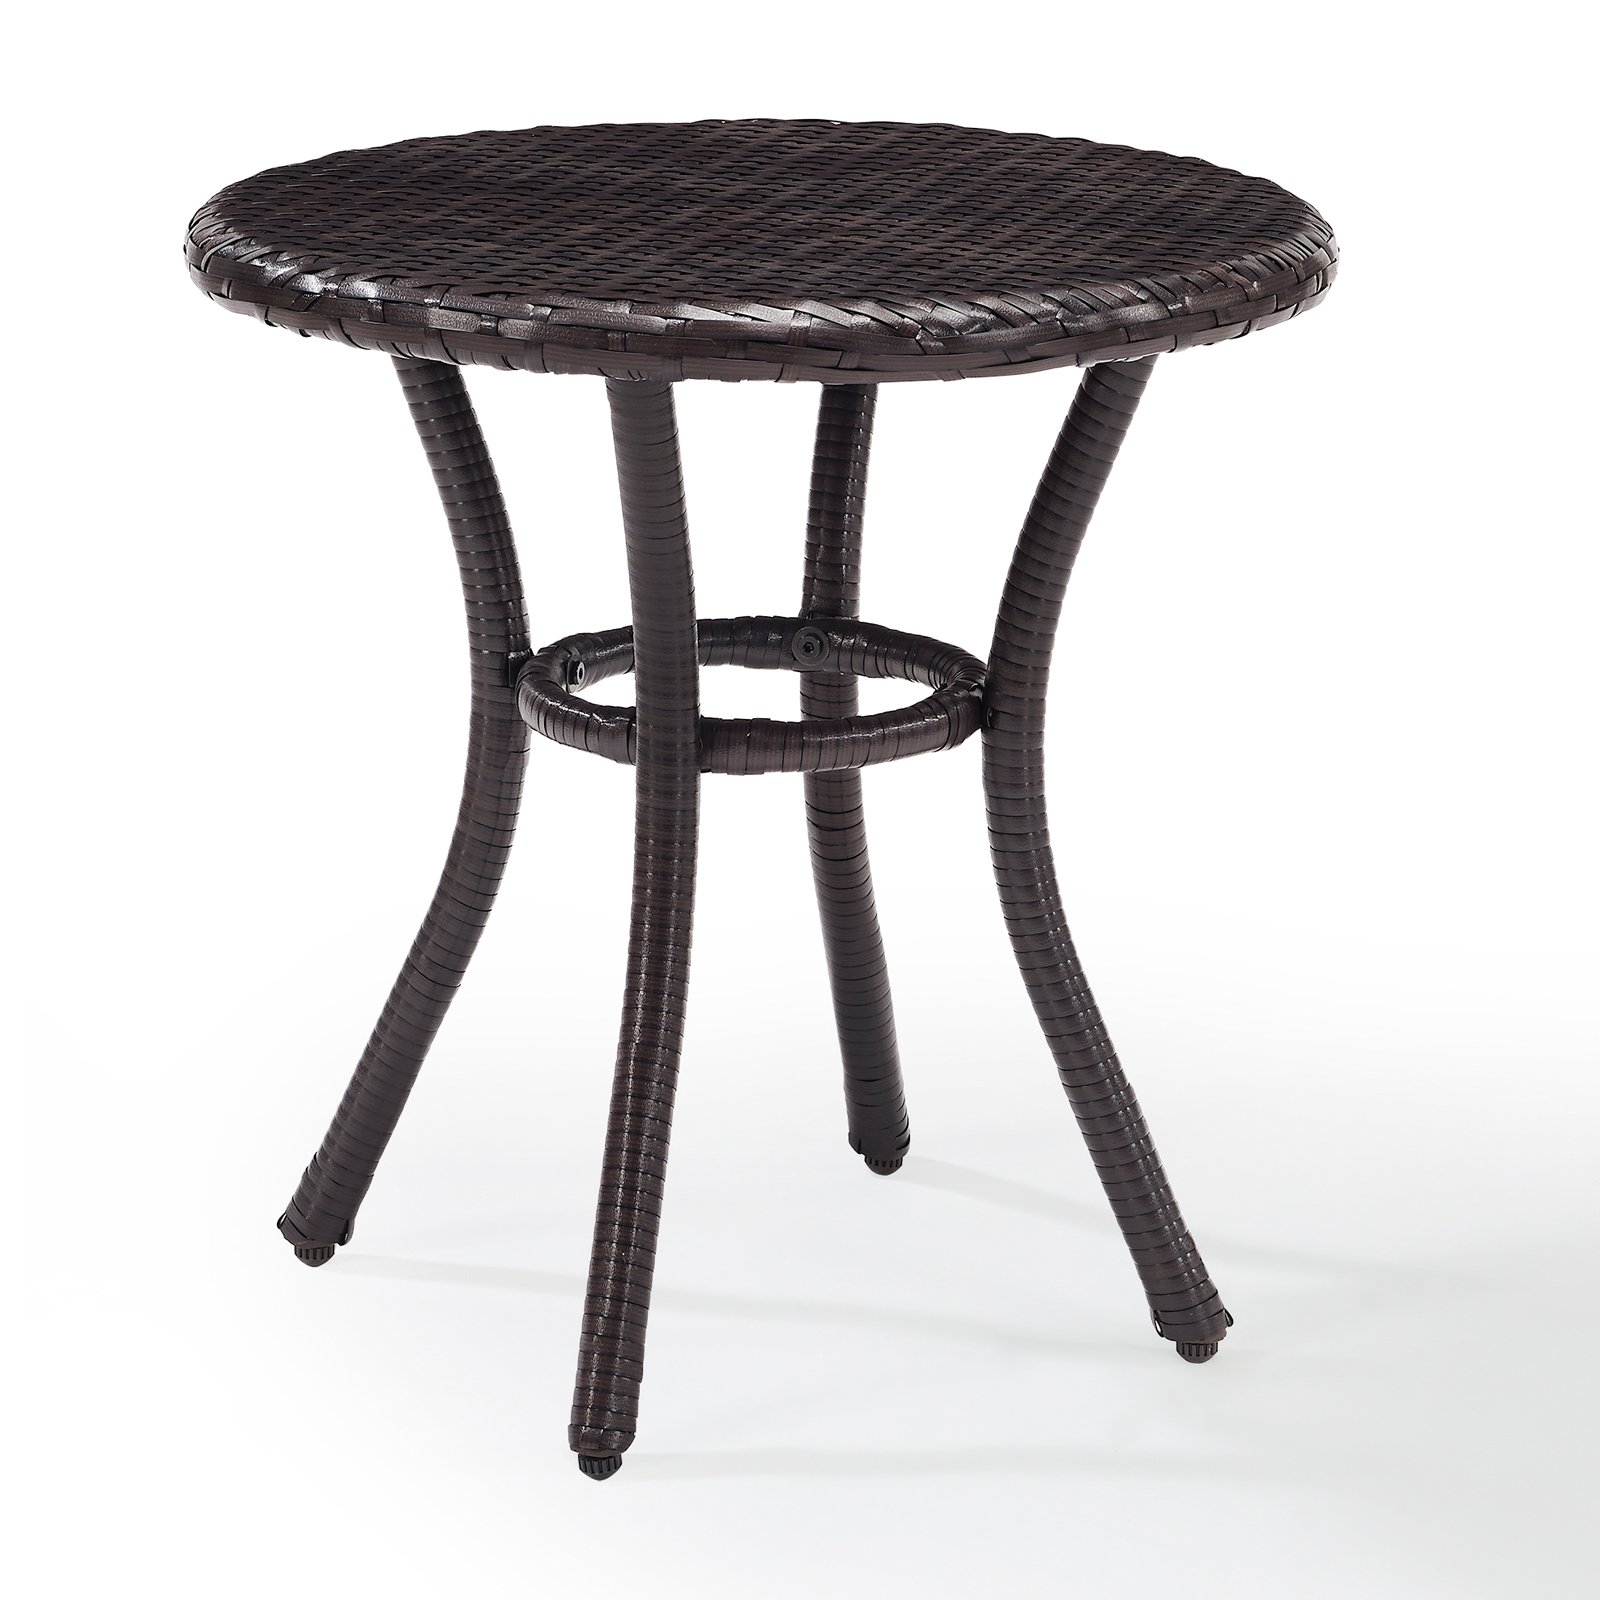 mosaic accent table outdoor coffee mrayubu beetle zaltana club product crosley palm harbor wicker round side rattan glass top battery powered lamps pier imports rugs the living